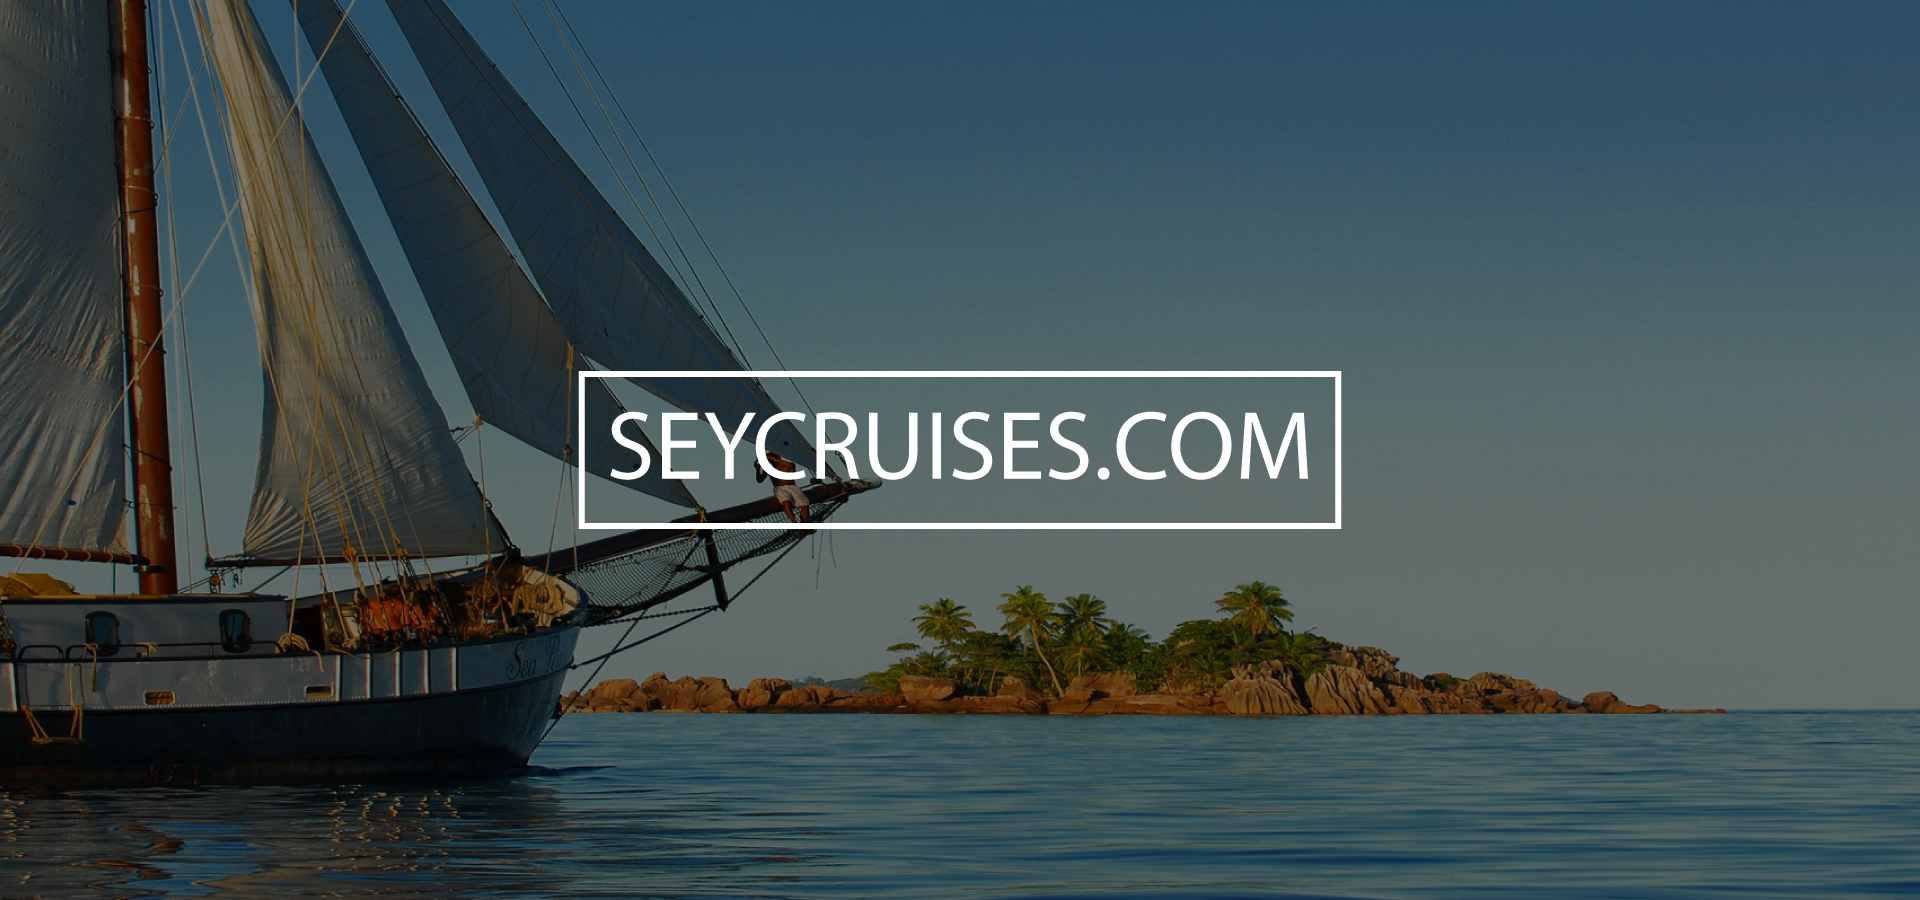 Website Maintenance for Sey Cruises